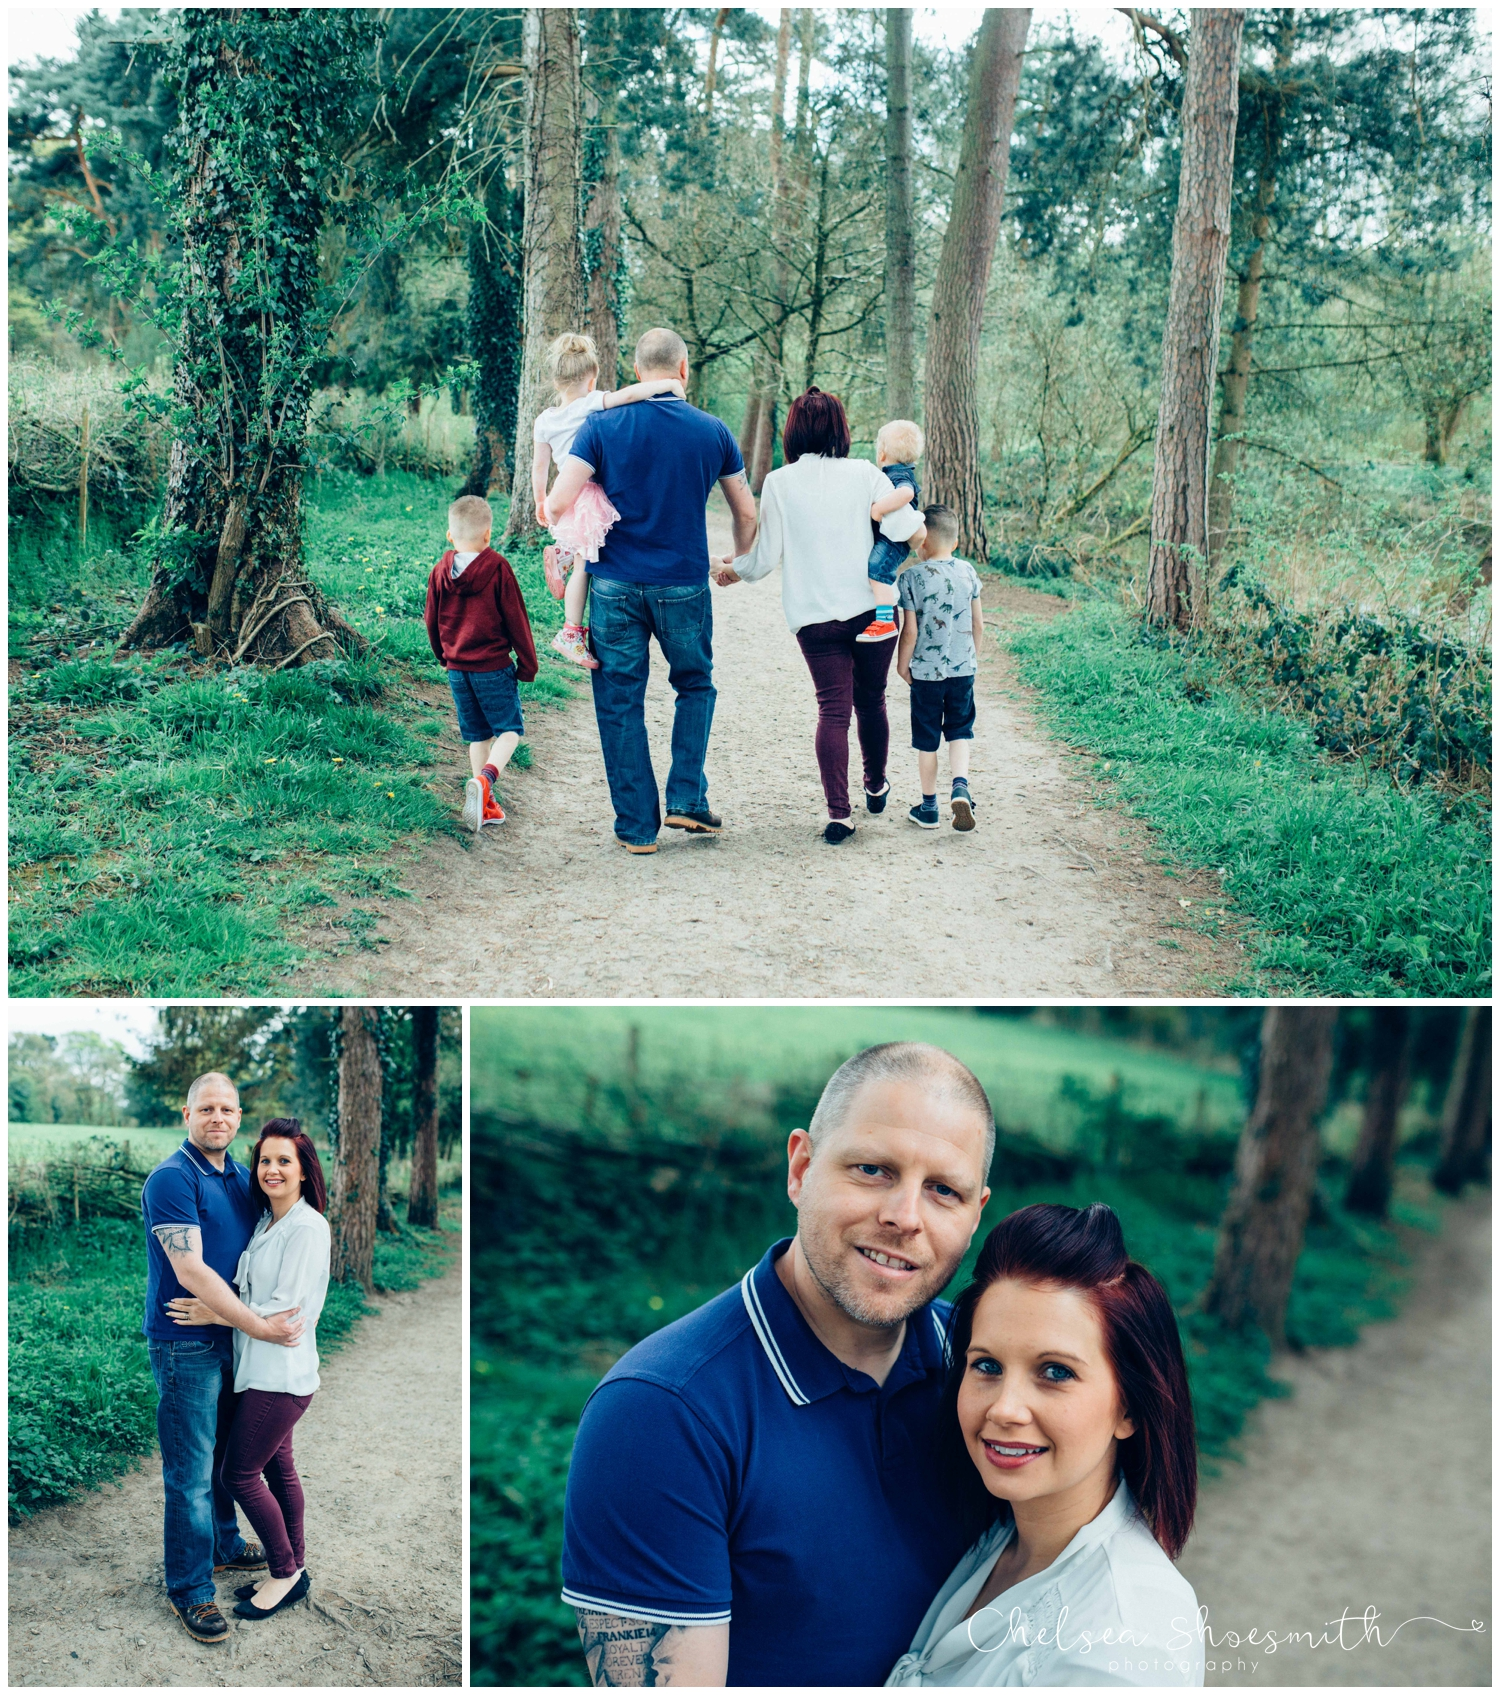 (50 of 72) Rigby Family Portrait Photography Quarry Bank Mill Styal Chelsea Shoesmith photography